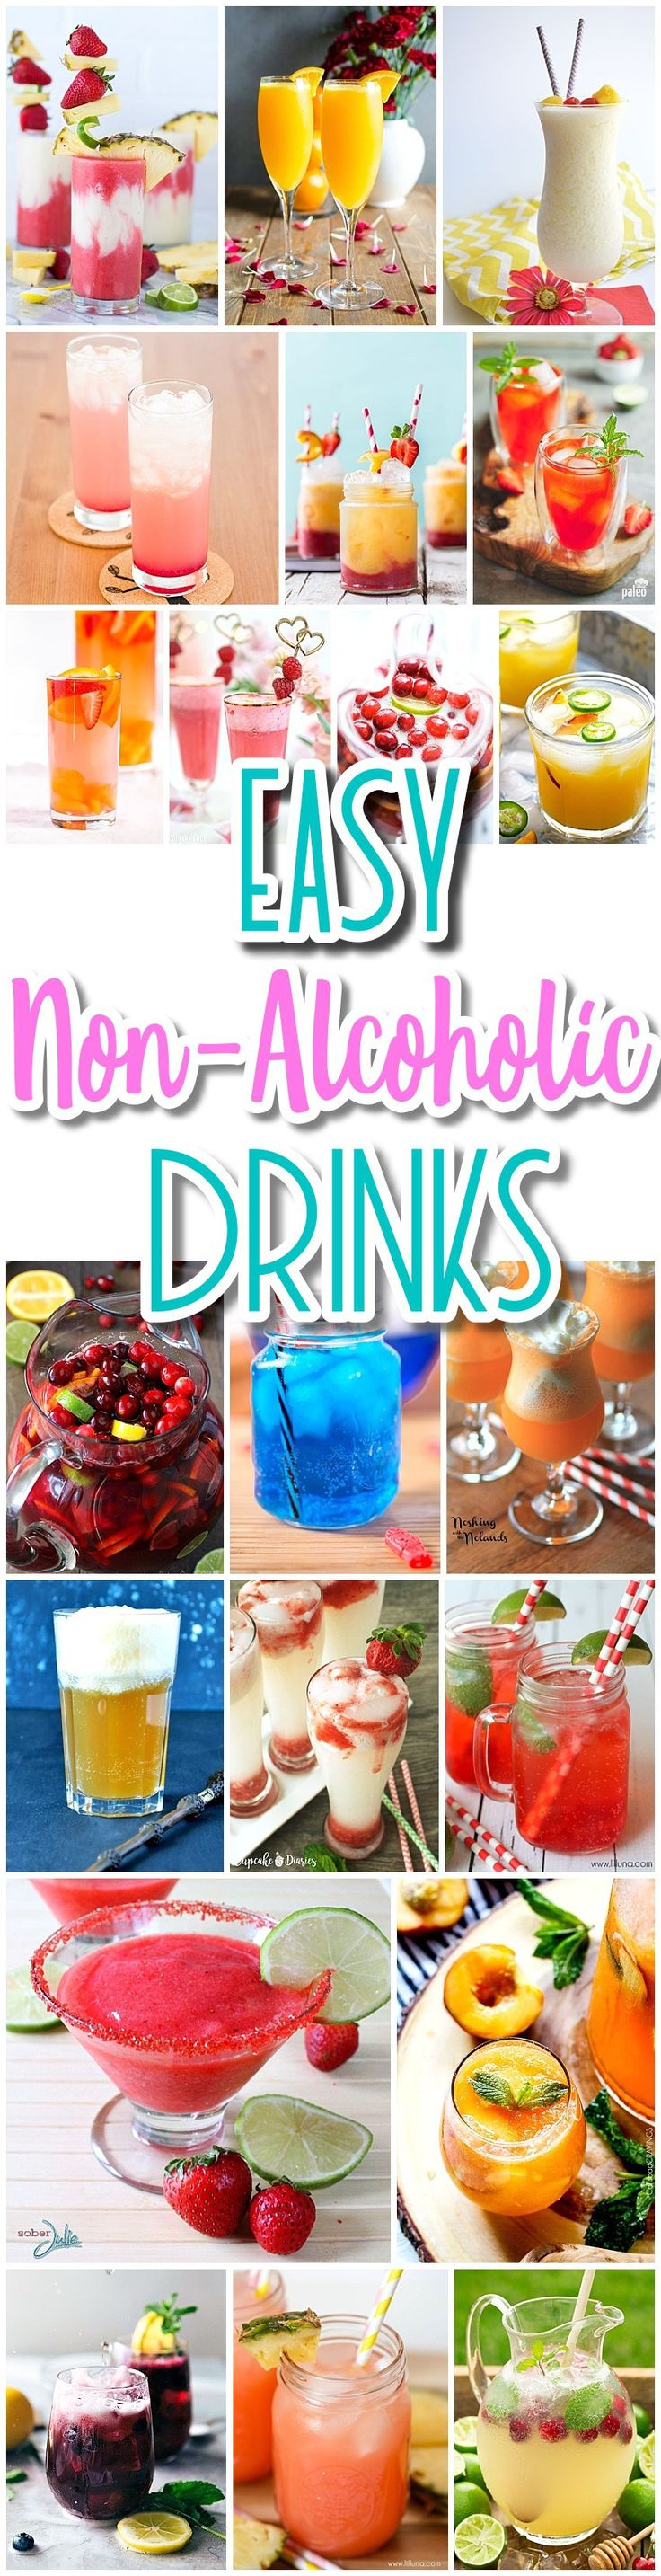 Best 25+ Best alcoholic drinks recipes ideas on Pinterest